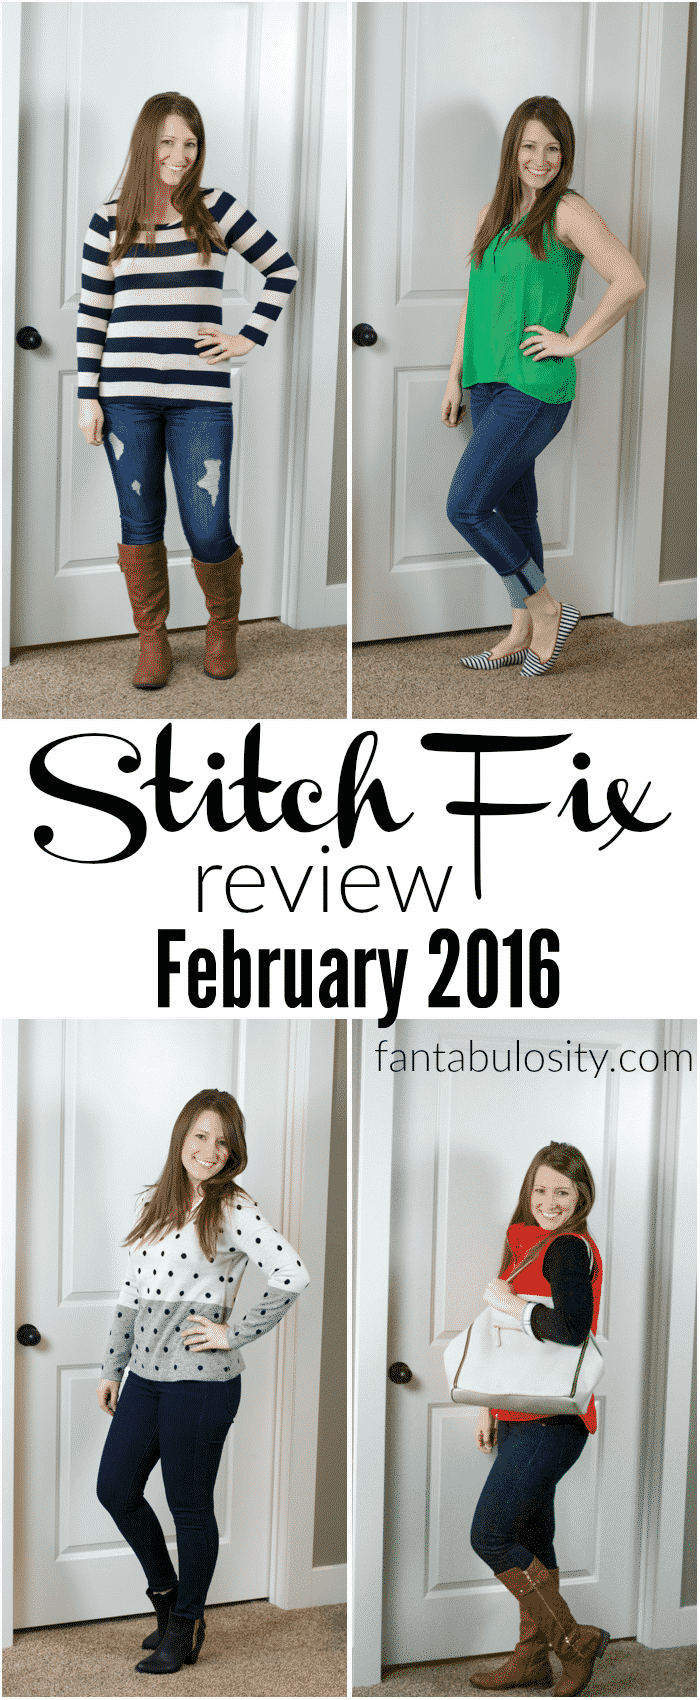 Stitch Fix Review February 2016 Try On Video fantabulosity.com